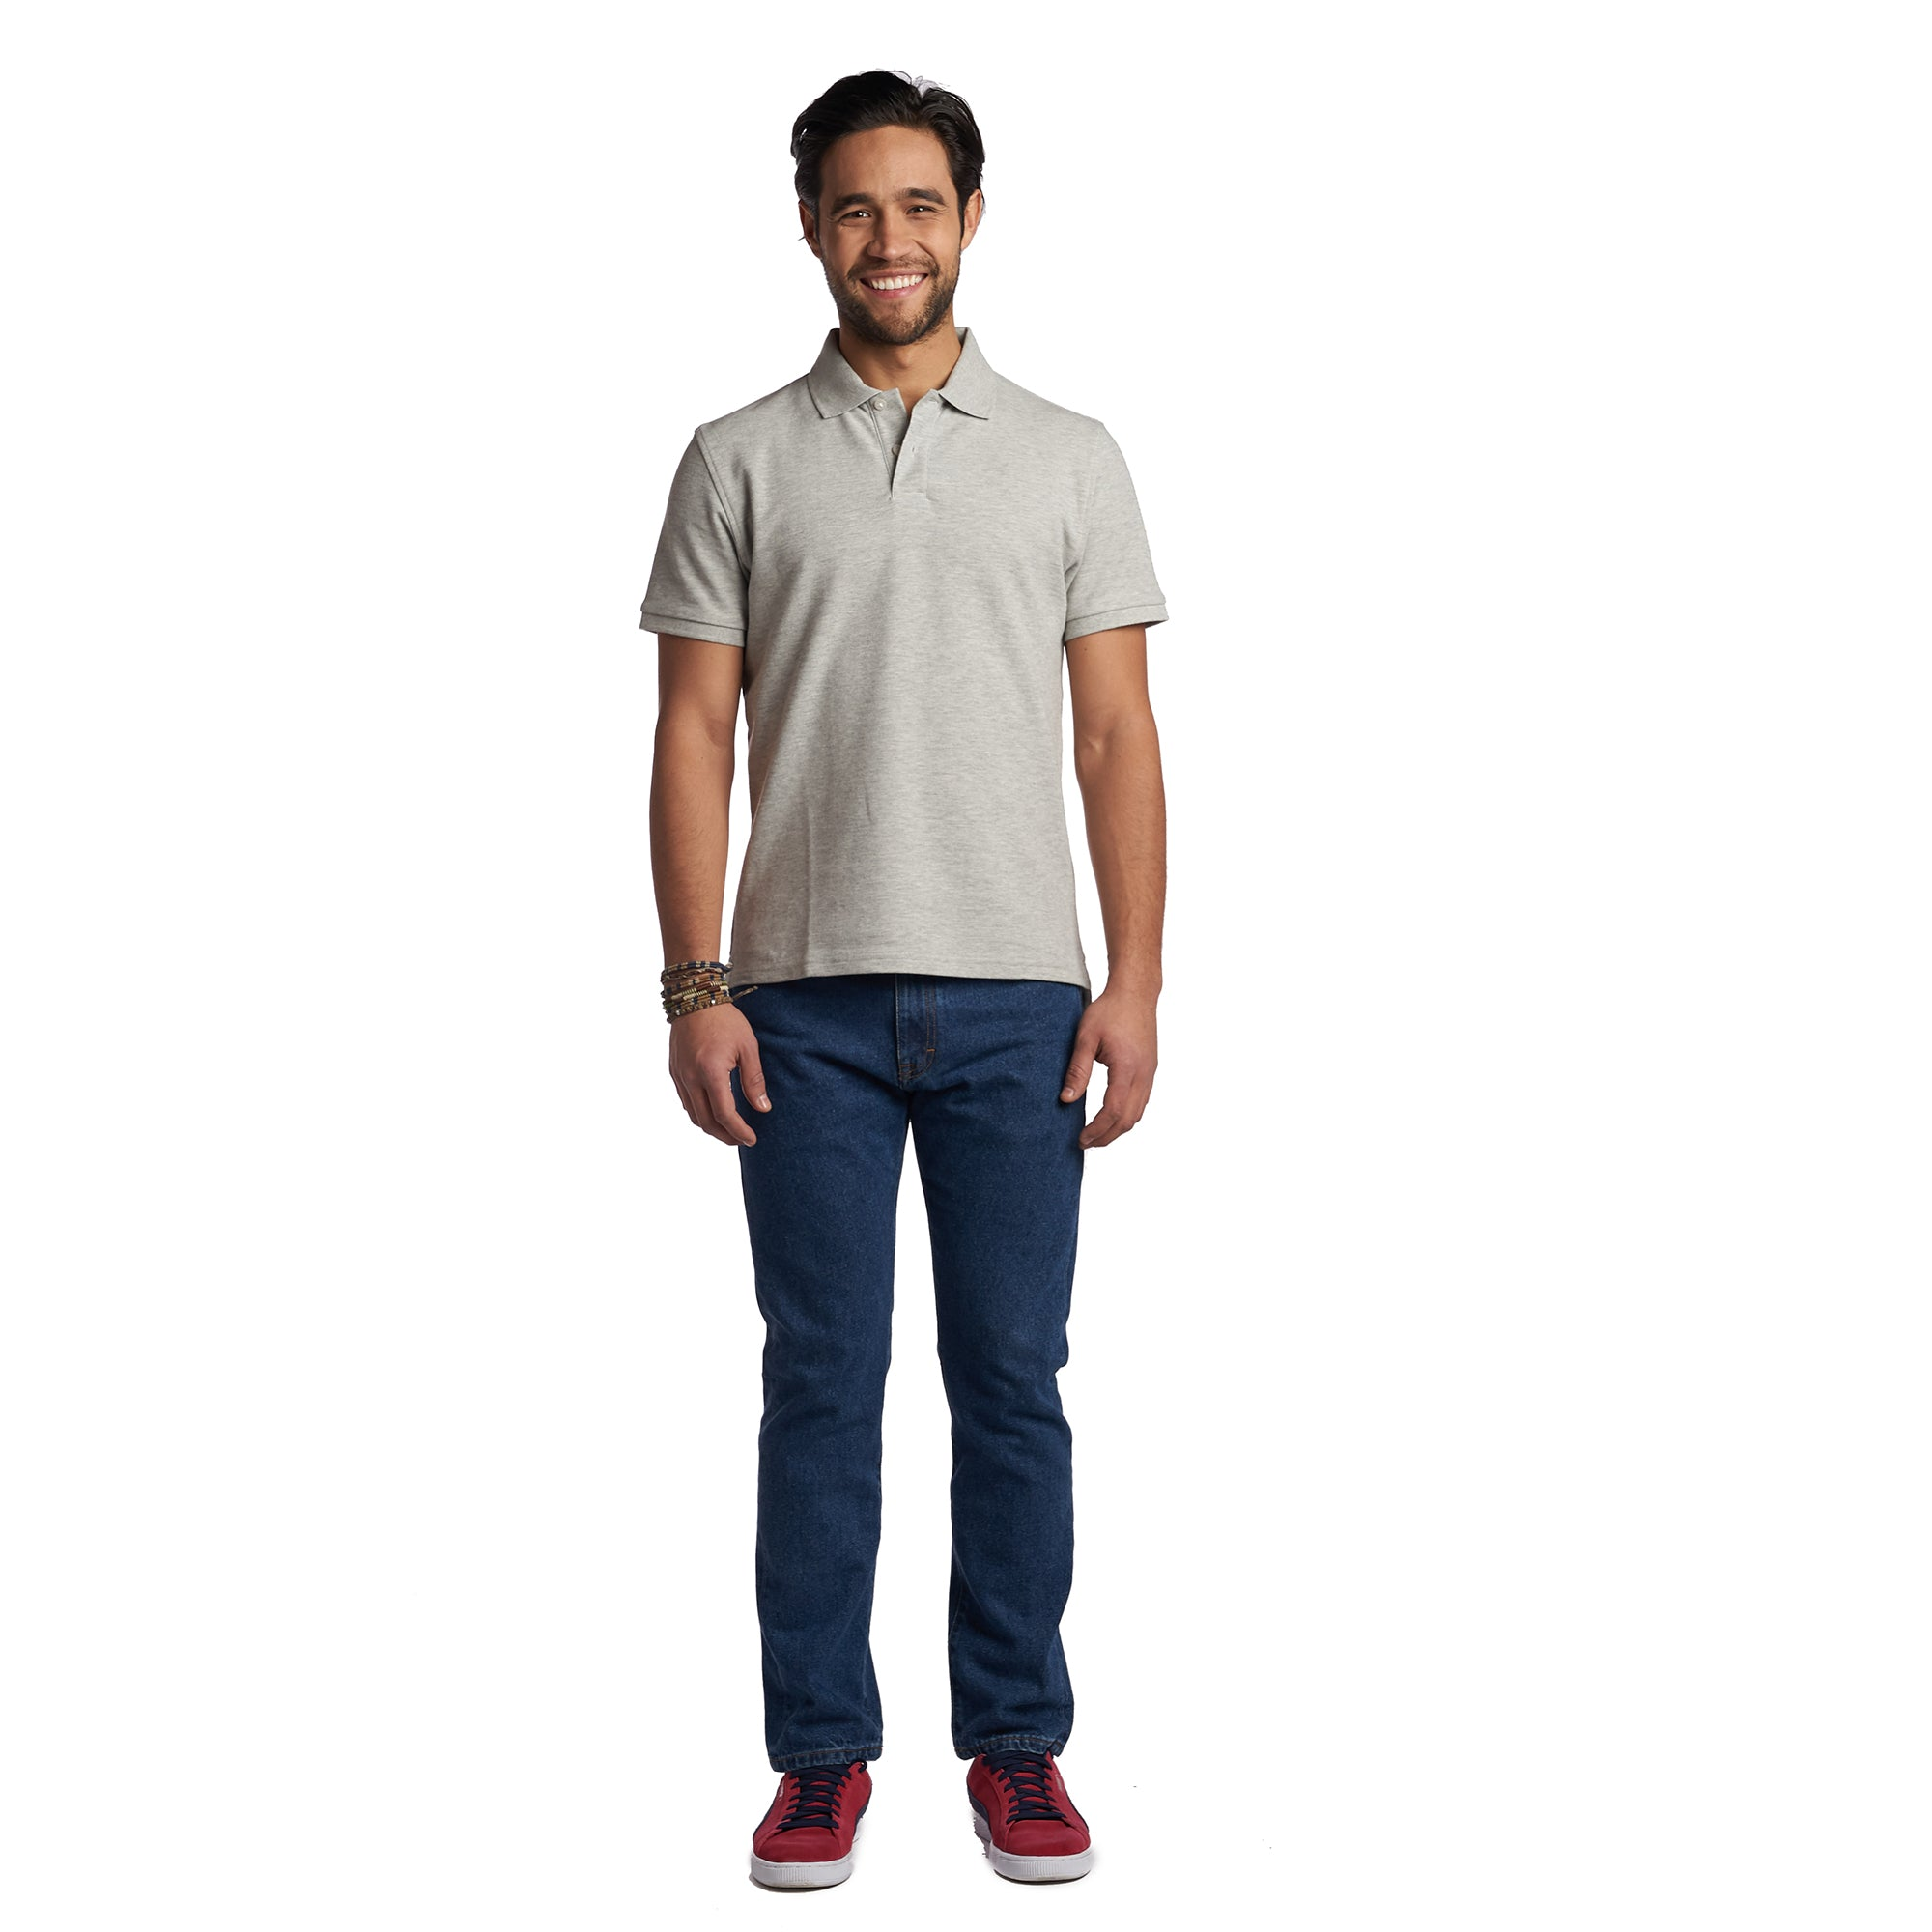 James Polo Shirt - Heather Grey